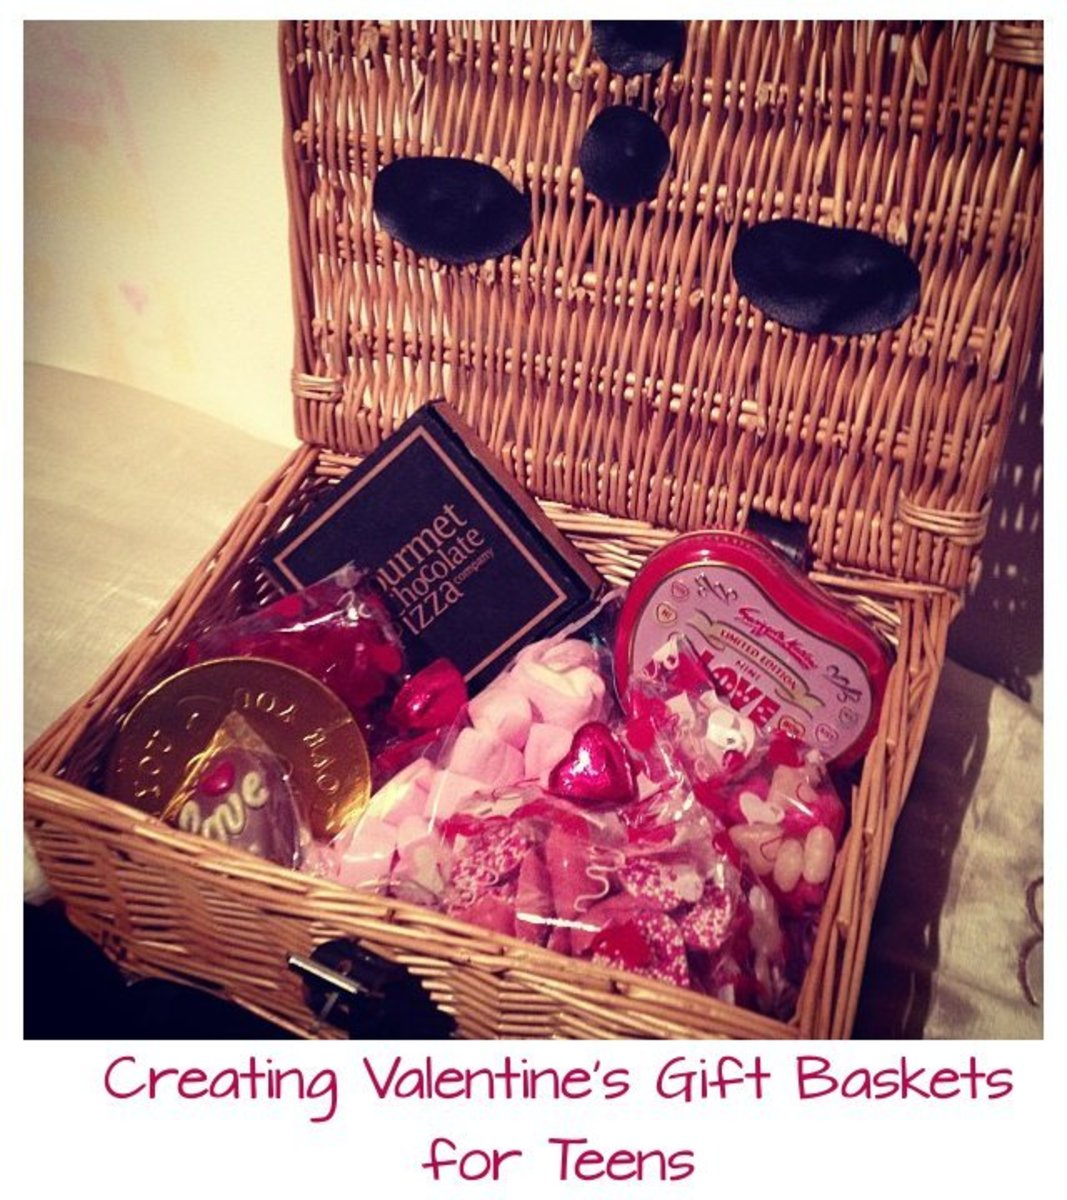 Gift baskets are fun to put together and make a great project for loved ones on your gift list for any holiday season. This guide will help you put together a gift basket for teens for Valentine's Day.